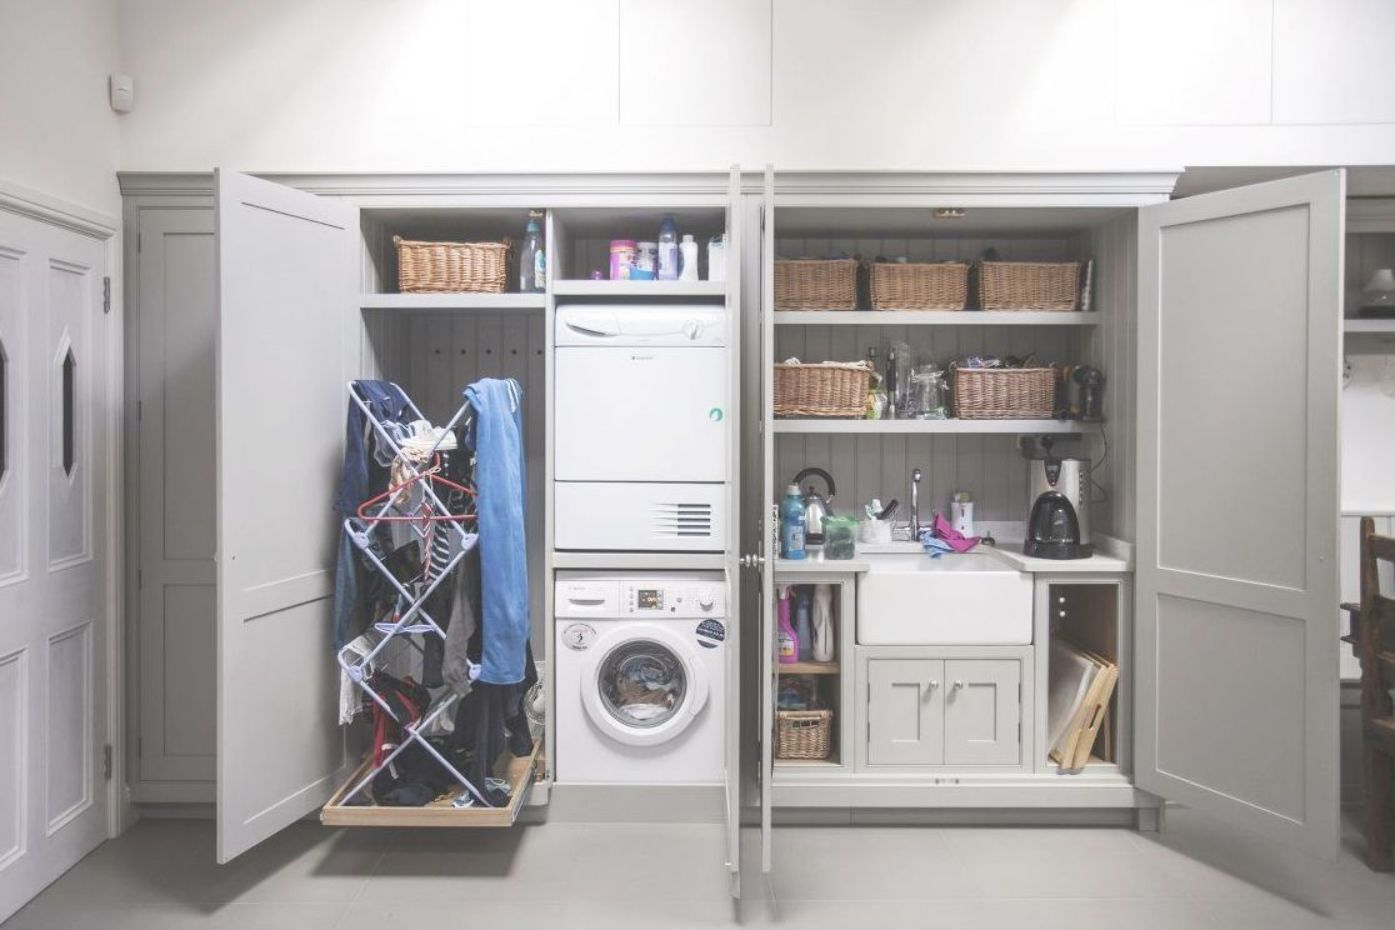 Utility Room Ideas 13 Ways To Make The Most Of Your Space Real Homes Utility Room Designs Utility Room Storage Utility Rooms